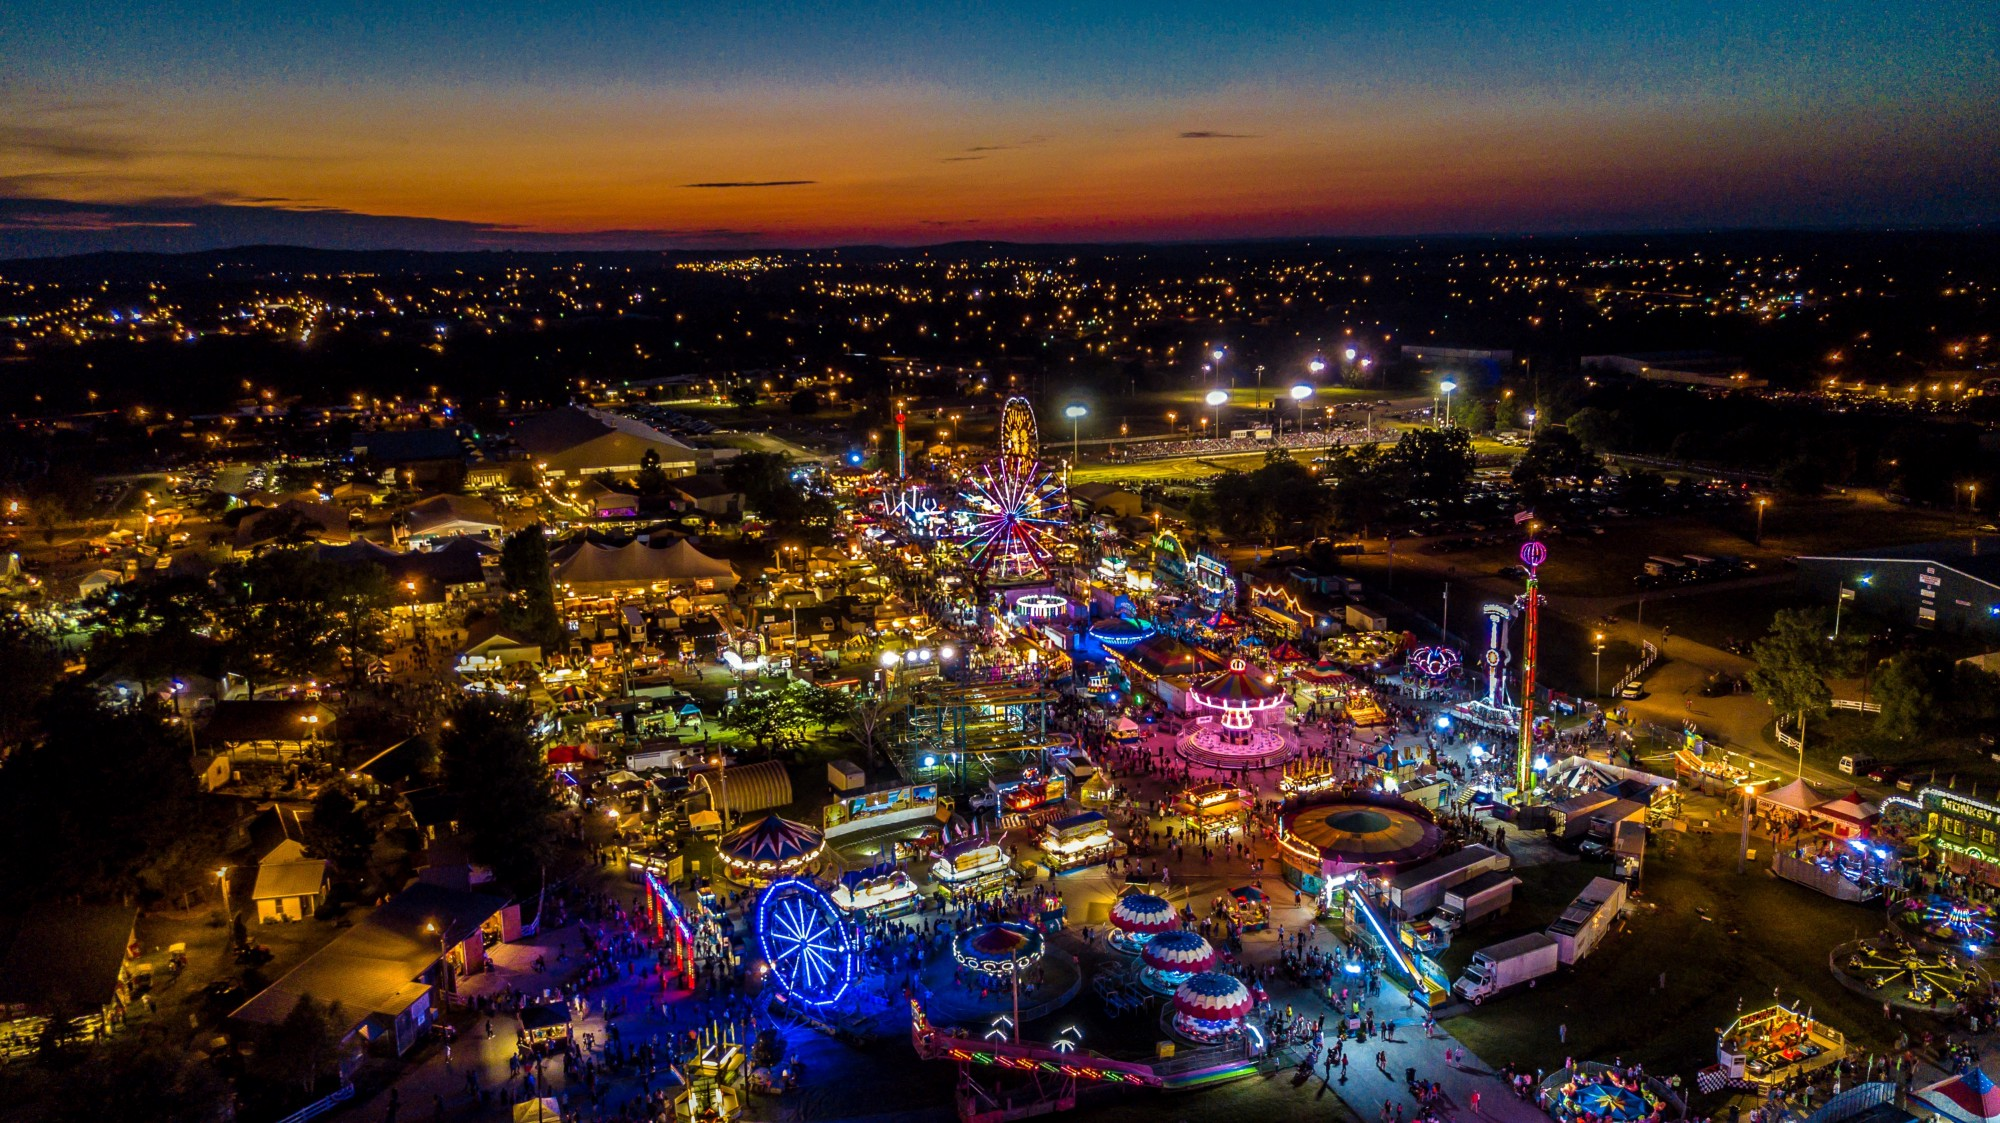 Night-time carnival lit up in colorful lights with the sun setting.